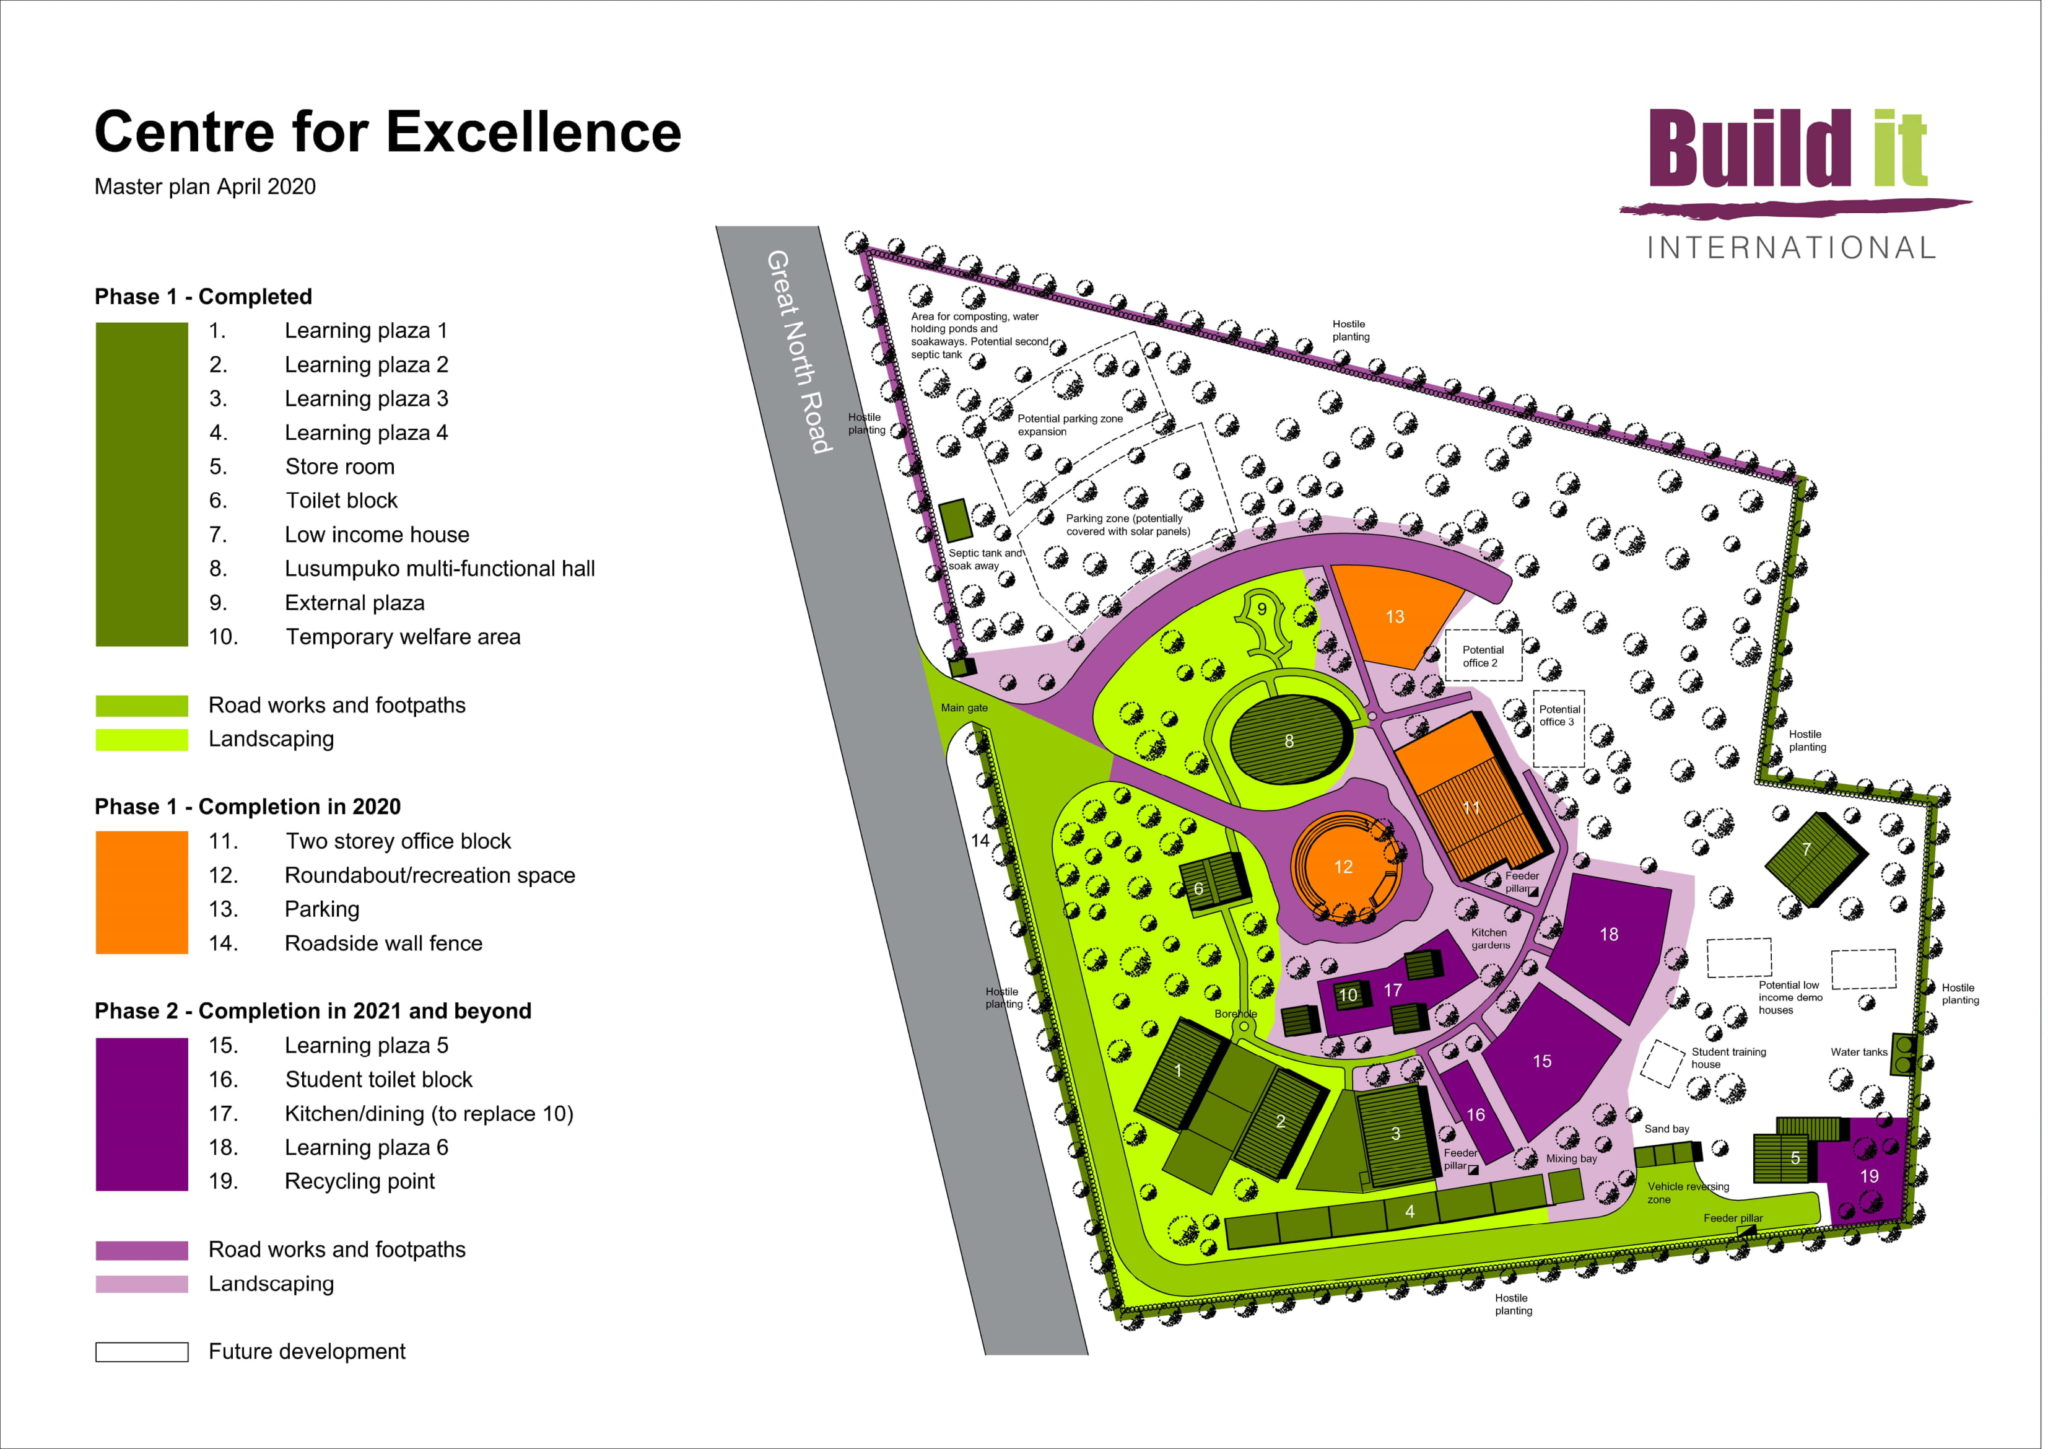 Build It Centre for Excellence Master Plan April 2020